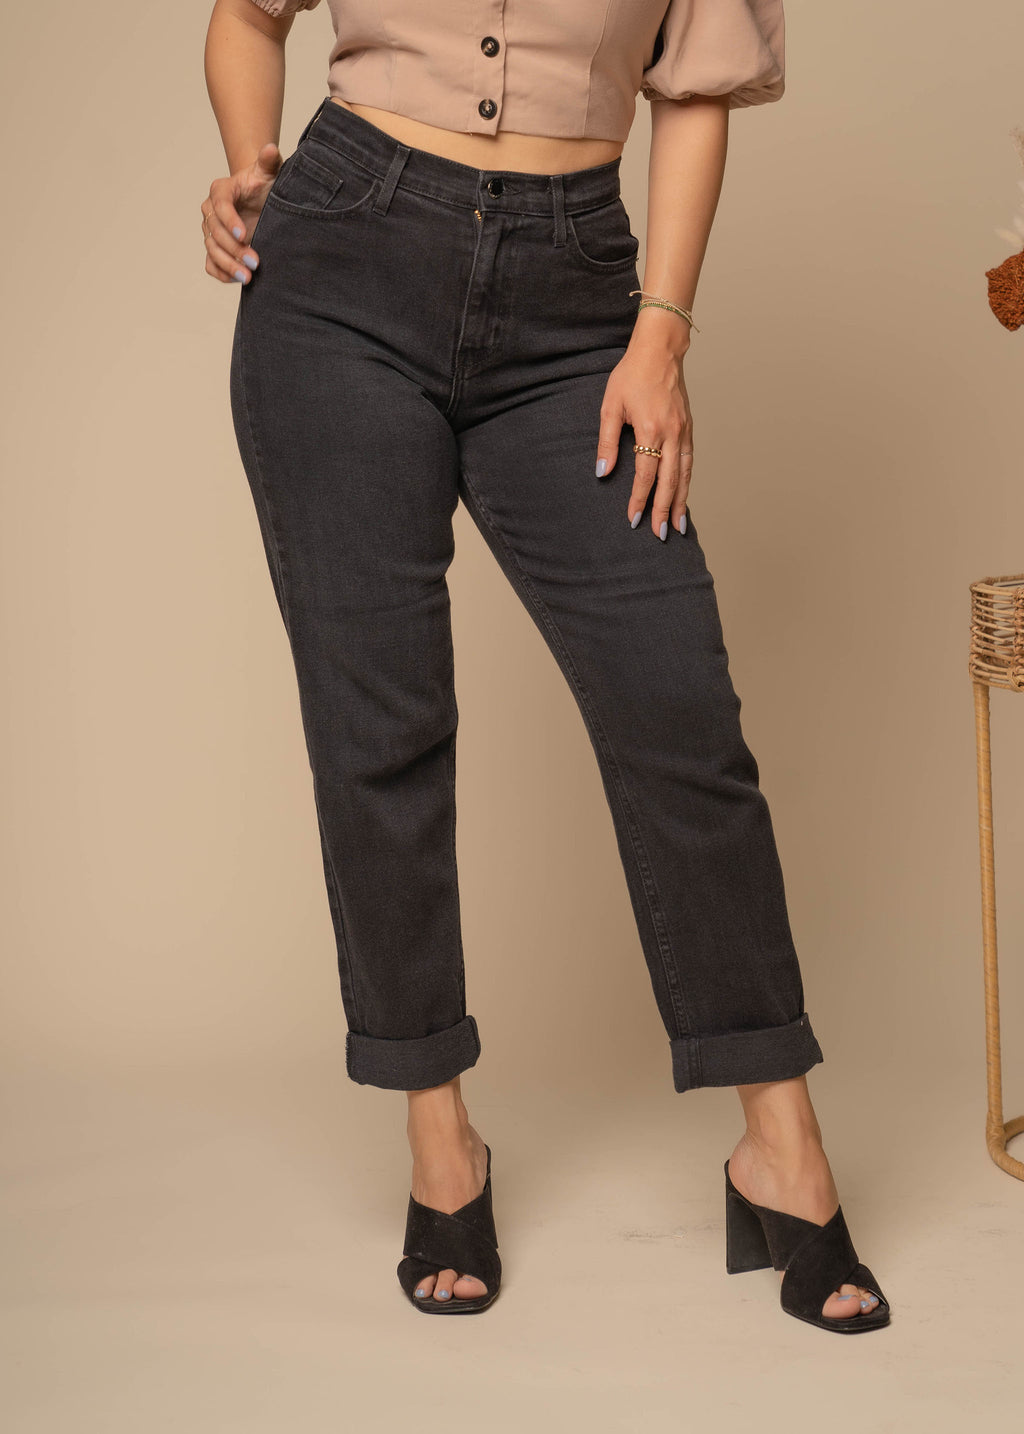 Loyalty Vintage Black Jeans